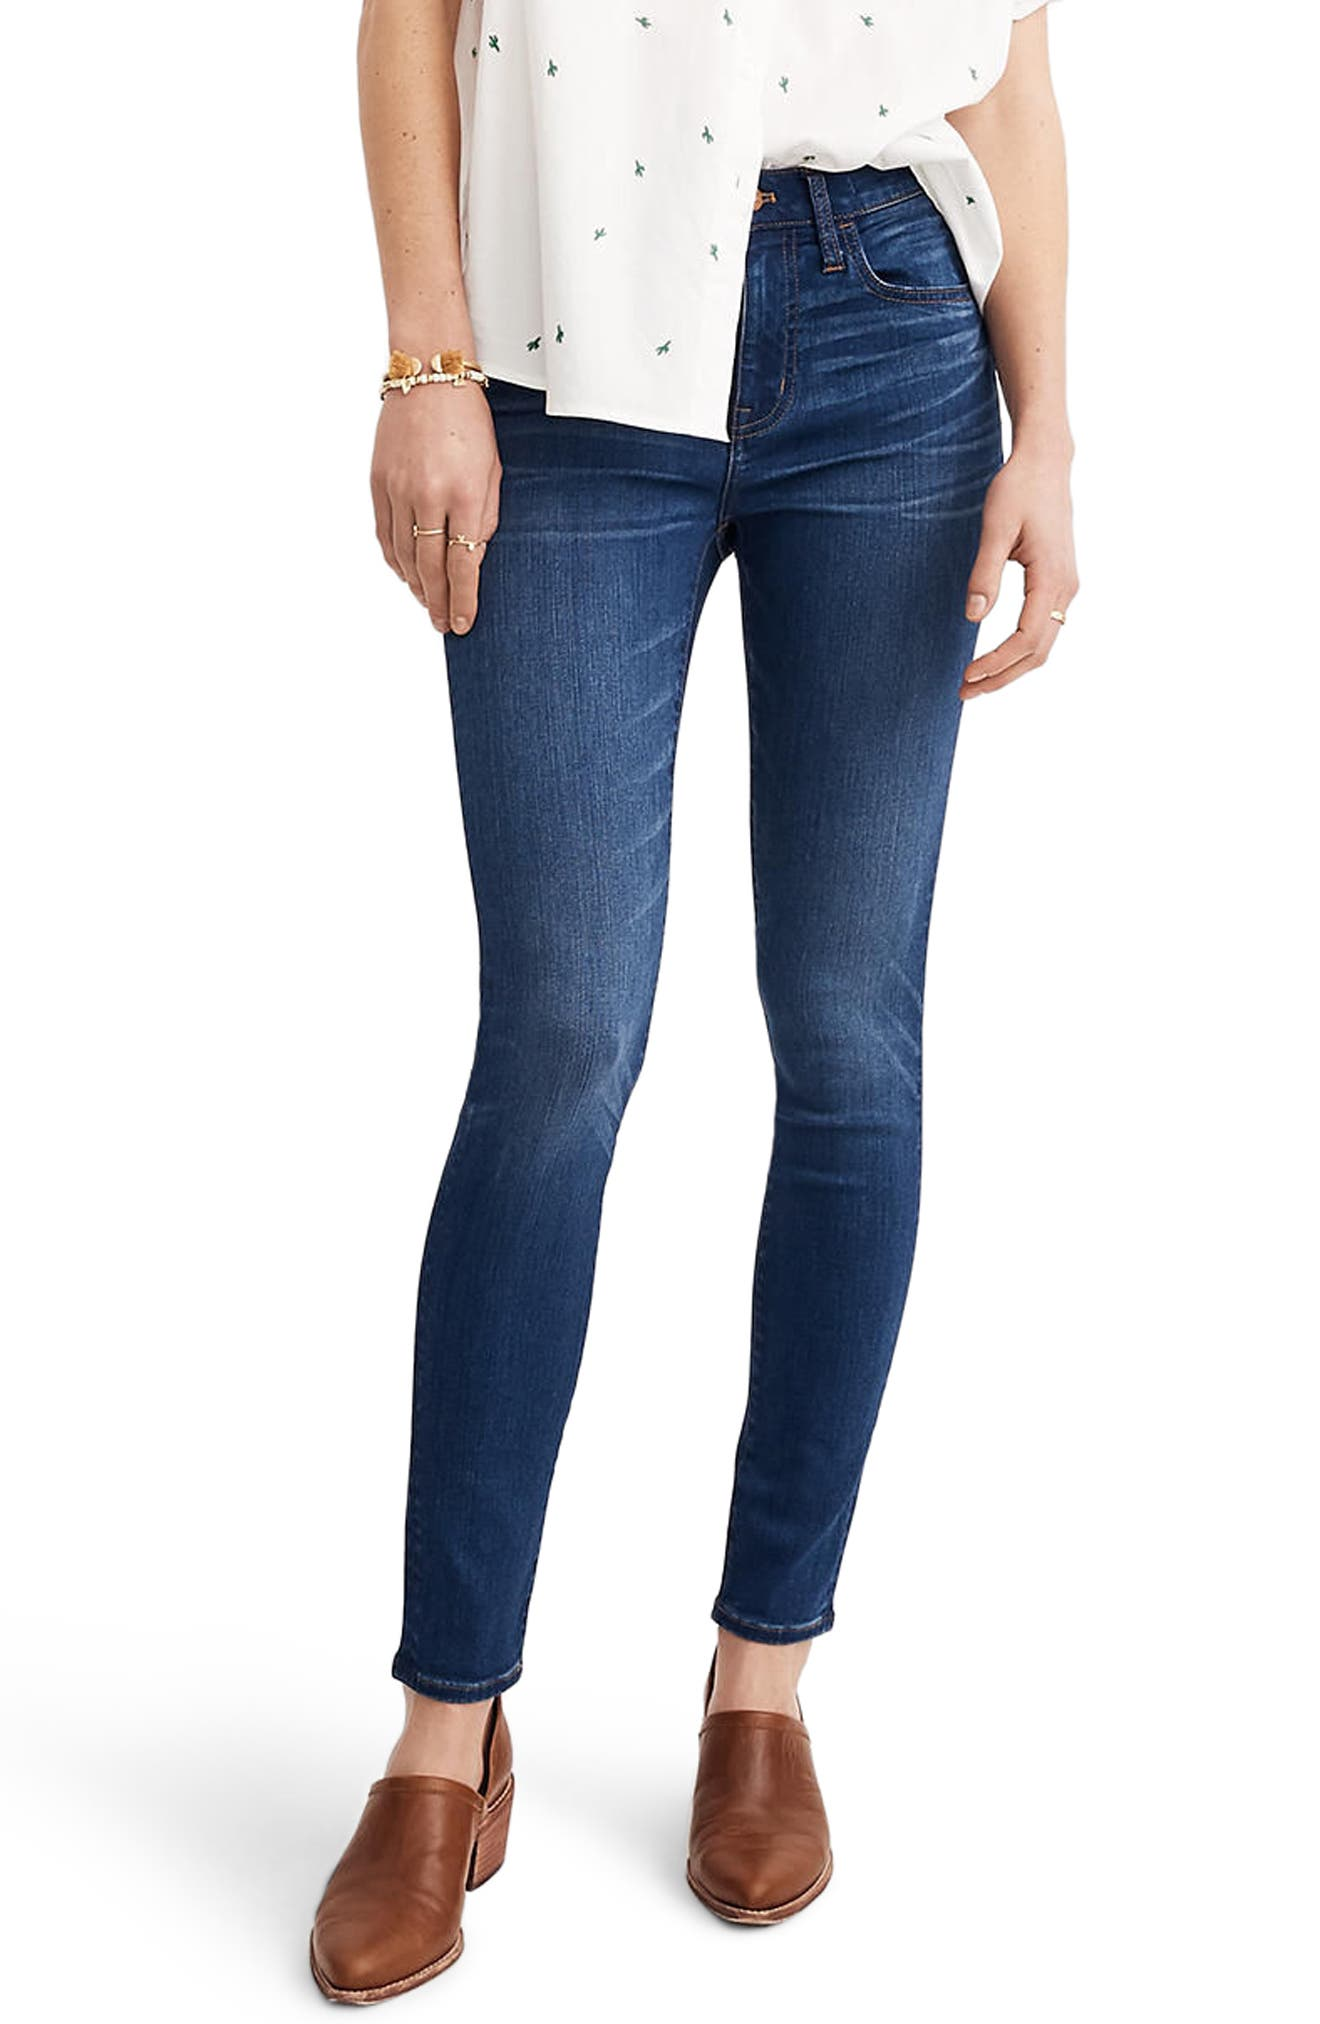 Roadtripper High Waist Skinny Jeans,                         Main,                         color, ORSON WASH